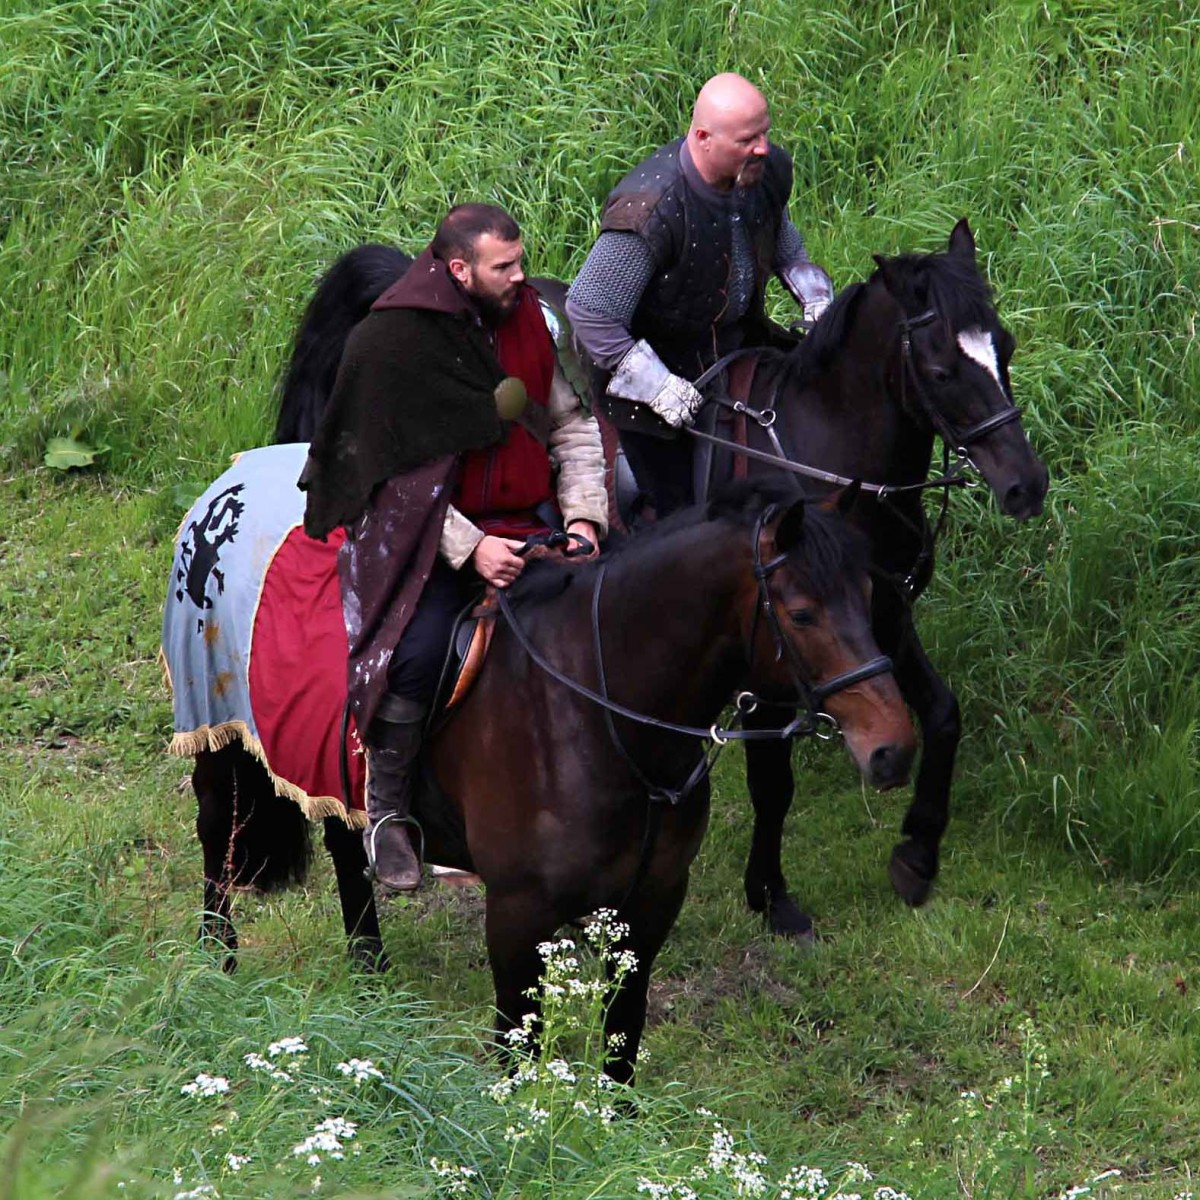 Medieval knights cantering back to the 21st century carpark